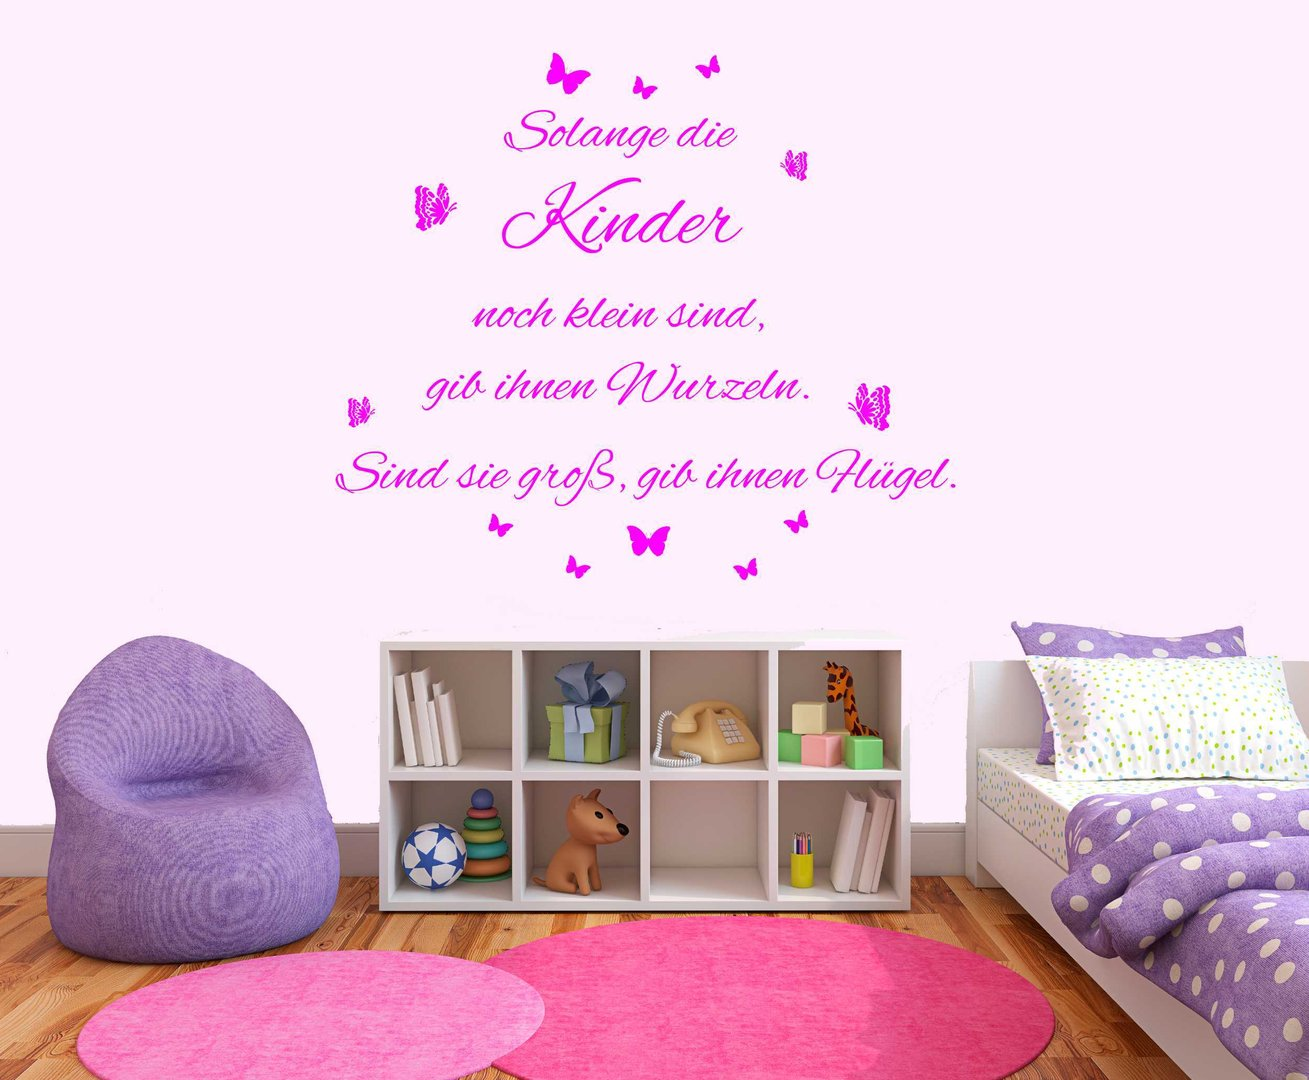 wandtattoo solange die kinder klein sind kinderzimmer. Black Bedroom Furniture Sets. Home Design Ideas